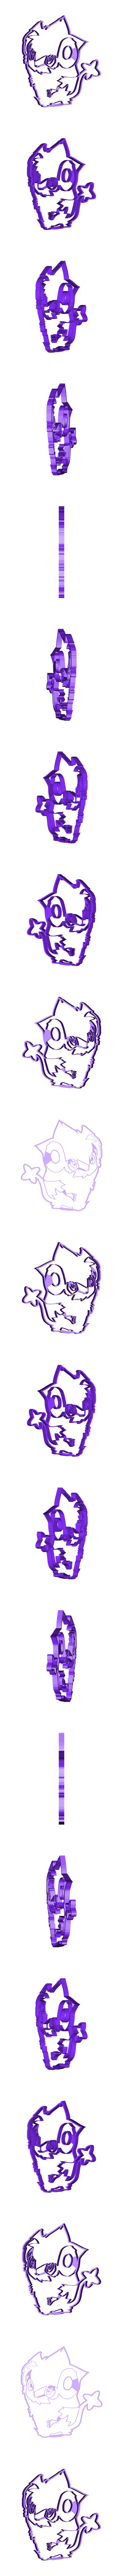 luxray piece 1.stl Download free STL file Pokemon go Cookies cutter • Object to 3D print, AmineZed